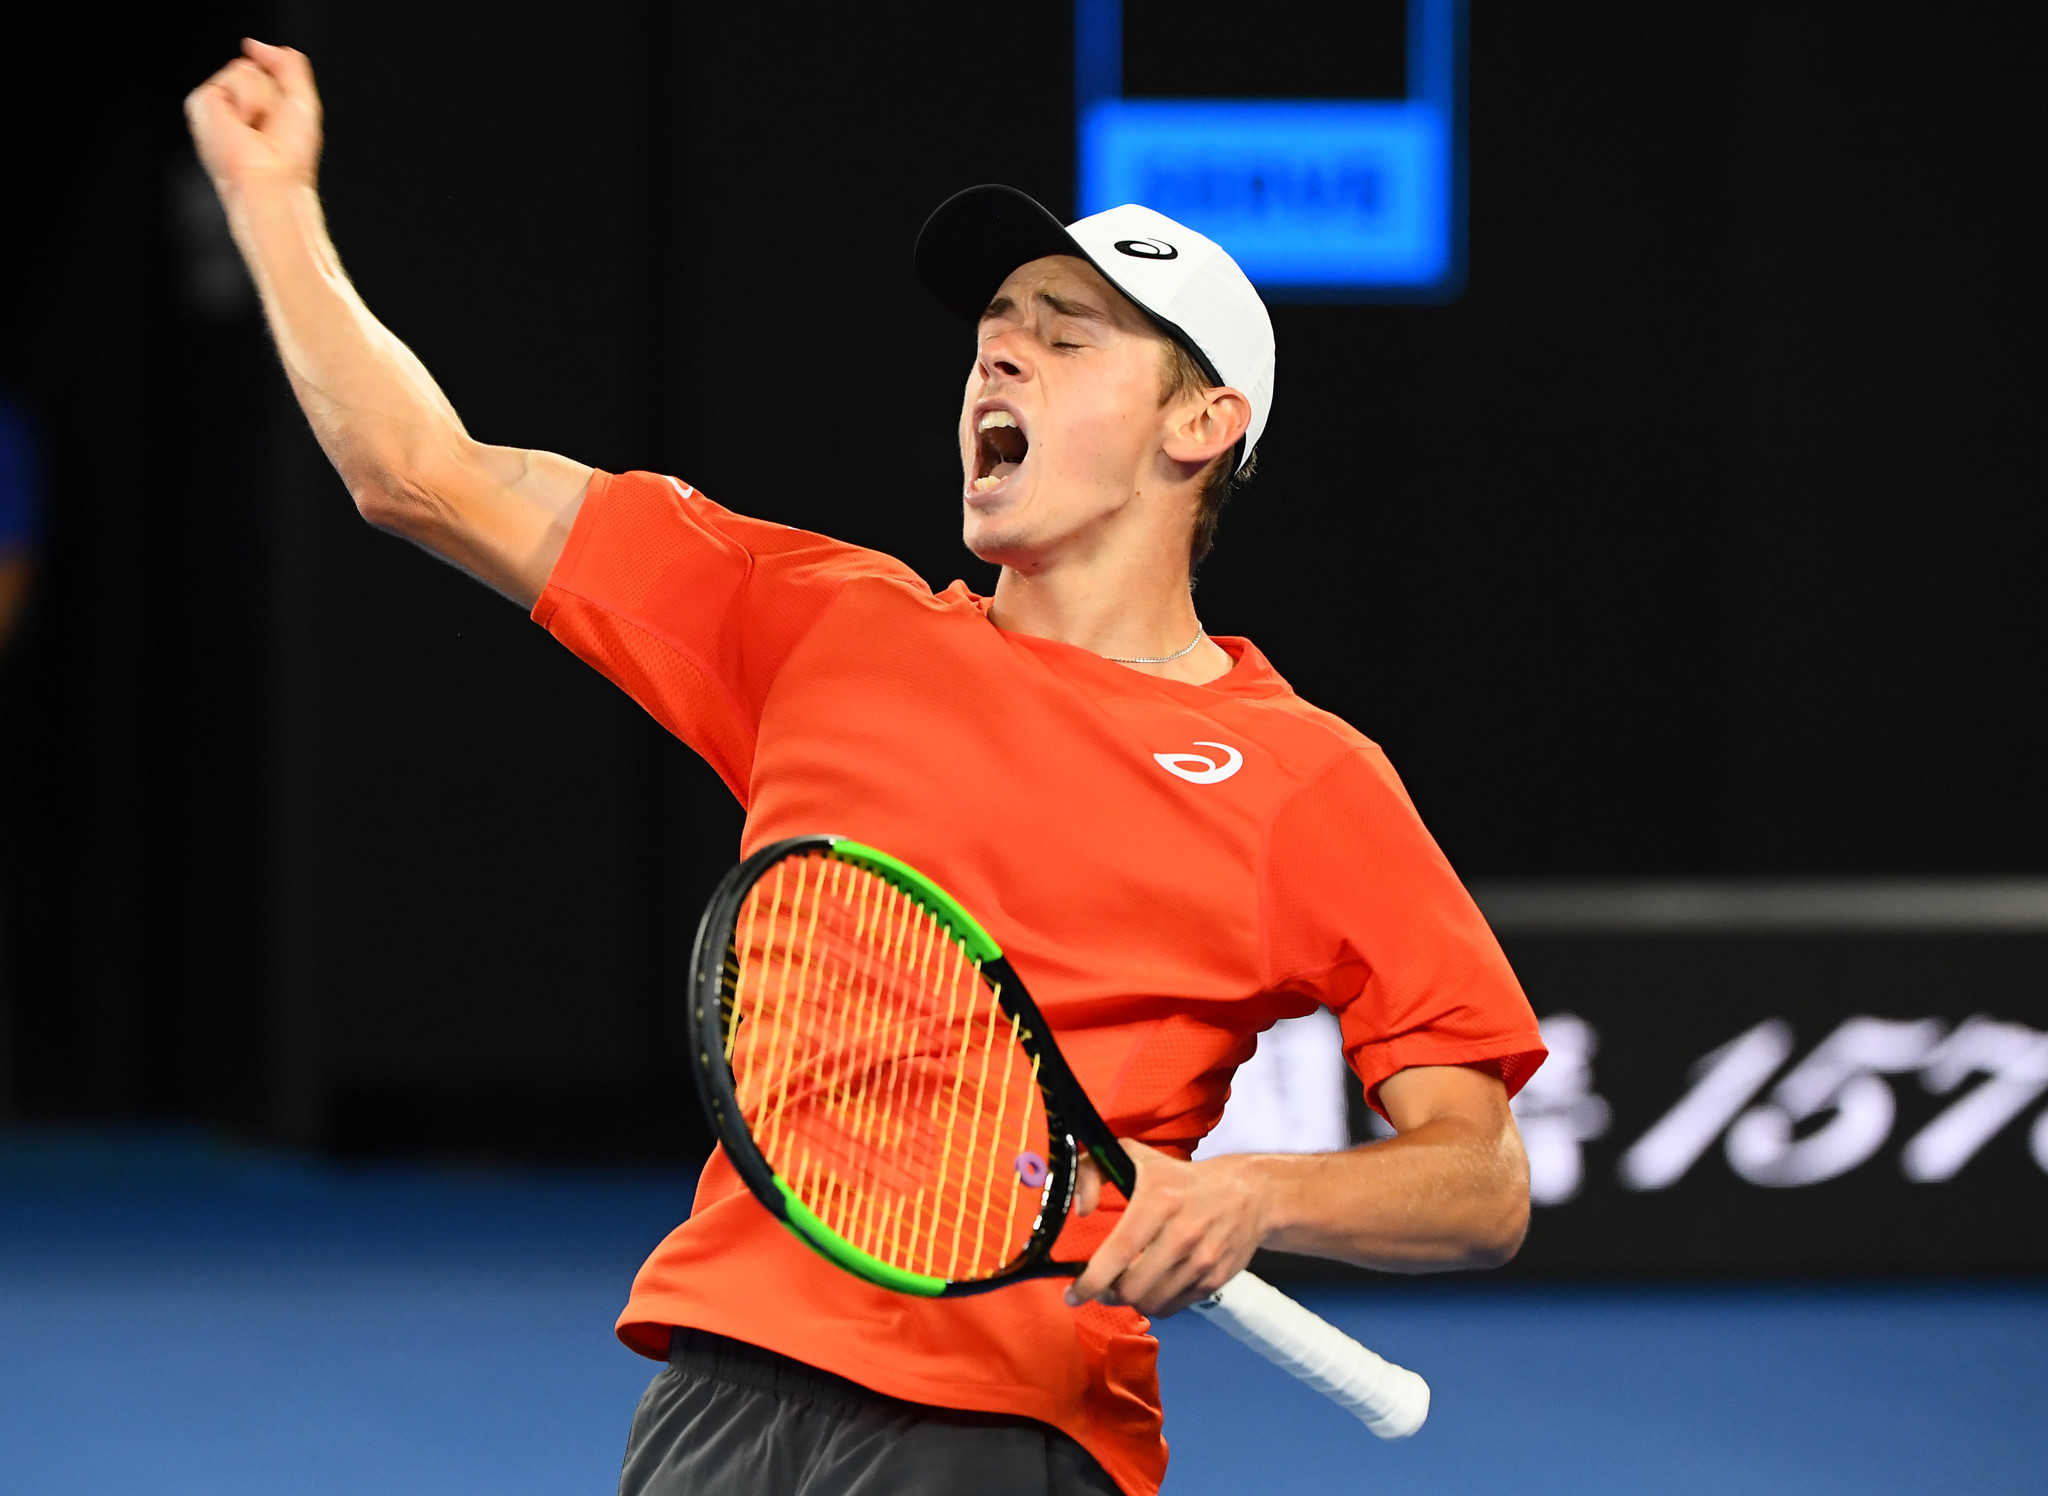 Australian teenage Alex de Minaur aimed to cause an upset against Rafael Nadal ©Getty Images